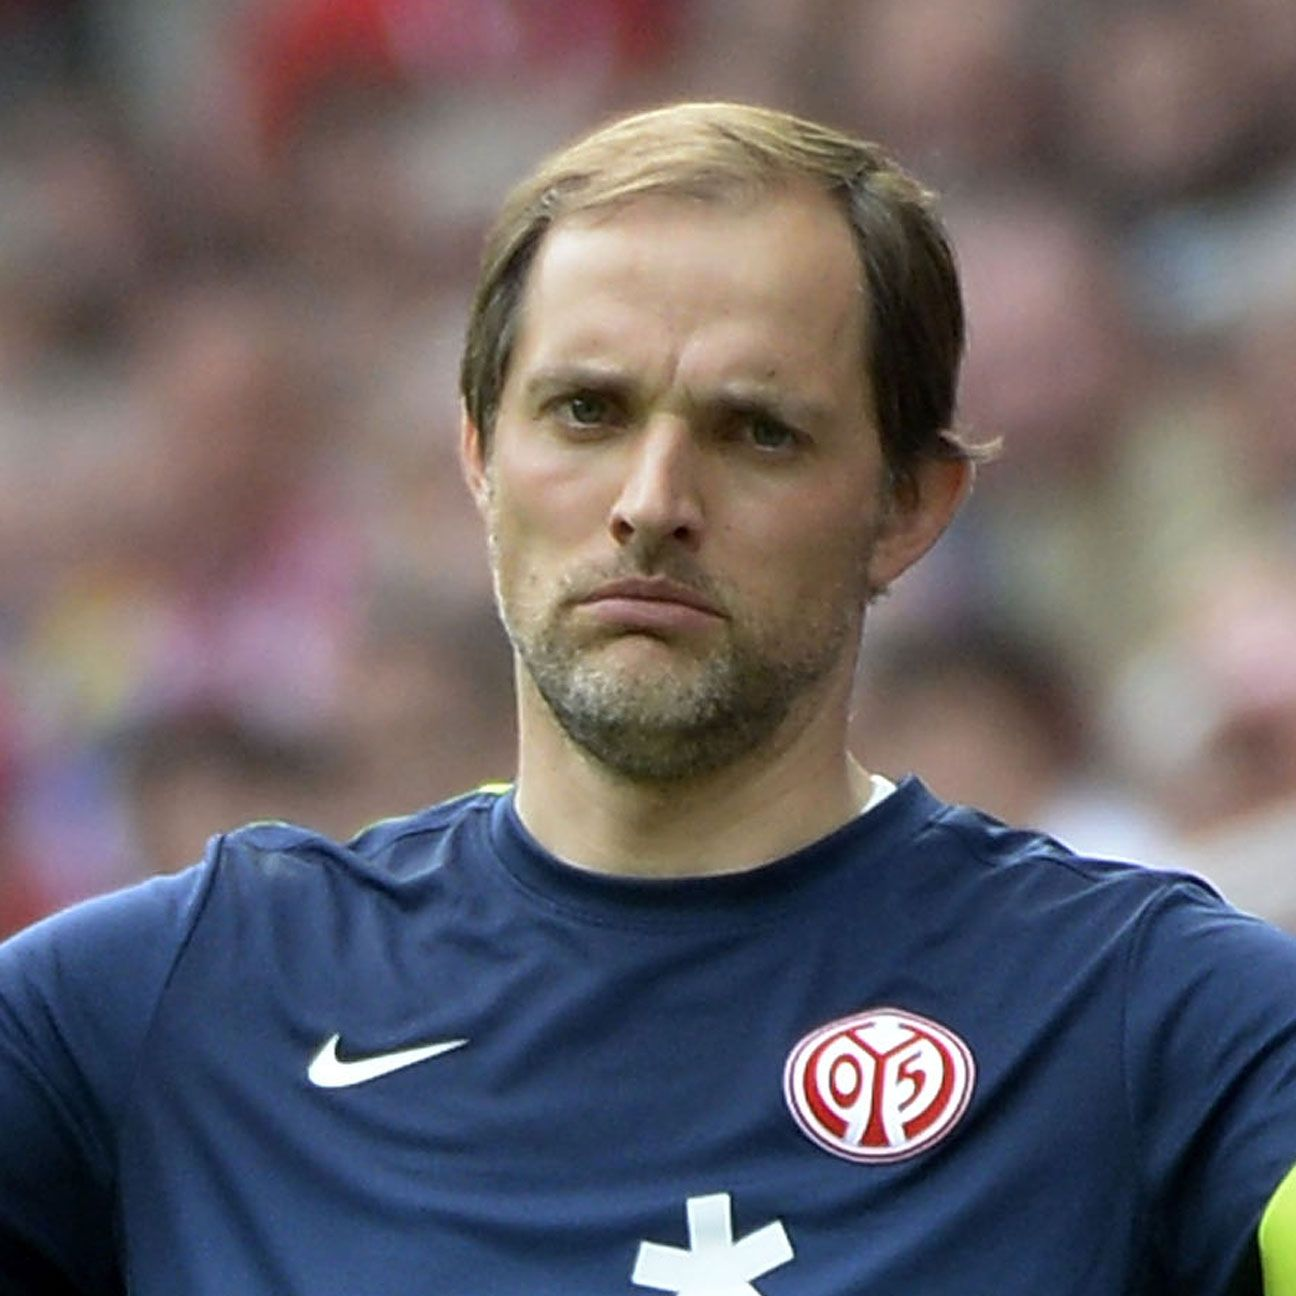 Thomas Tuchel's tactical acumen should provide Dortmund a boost.